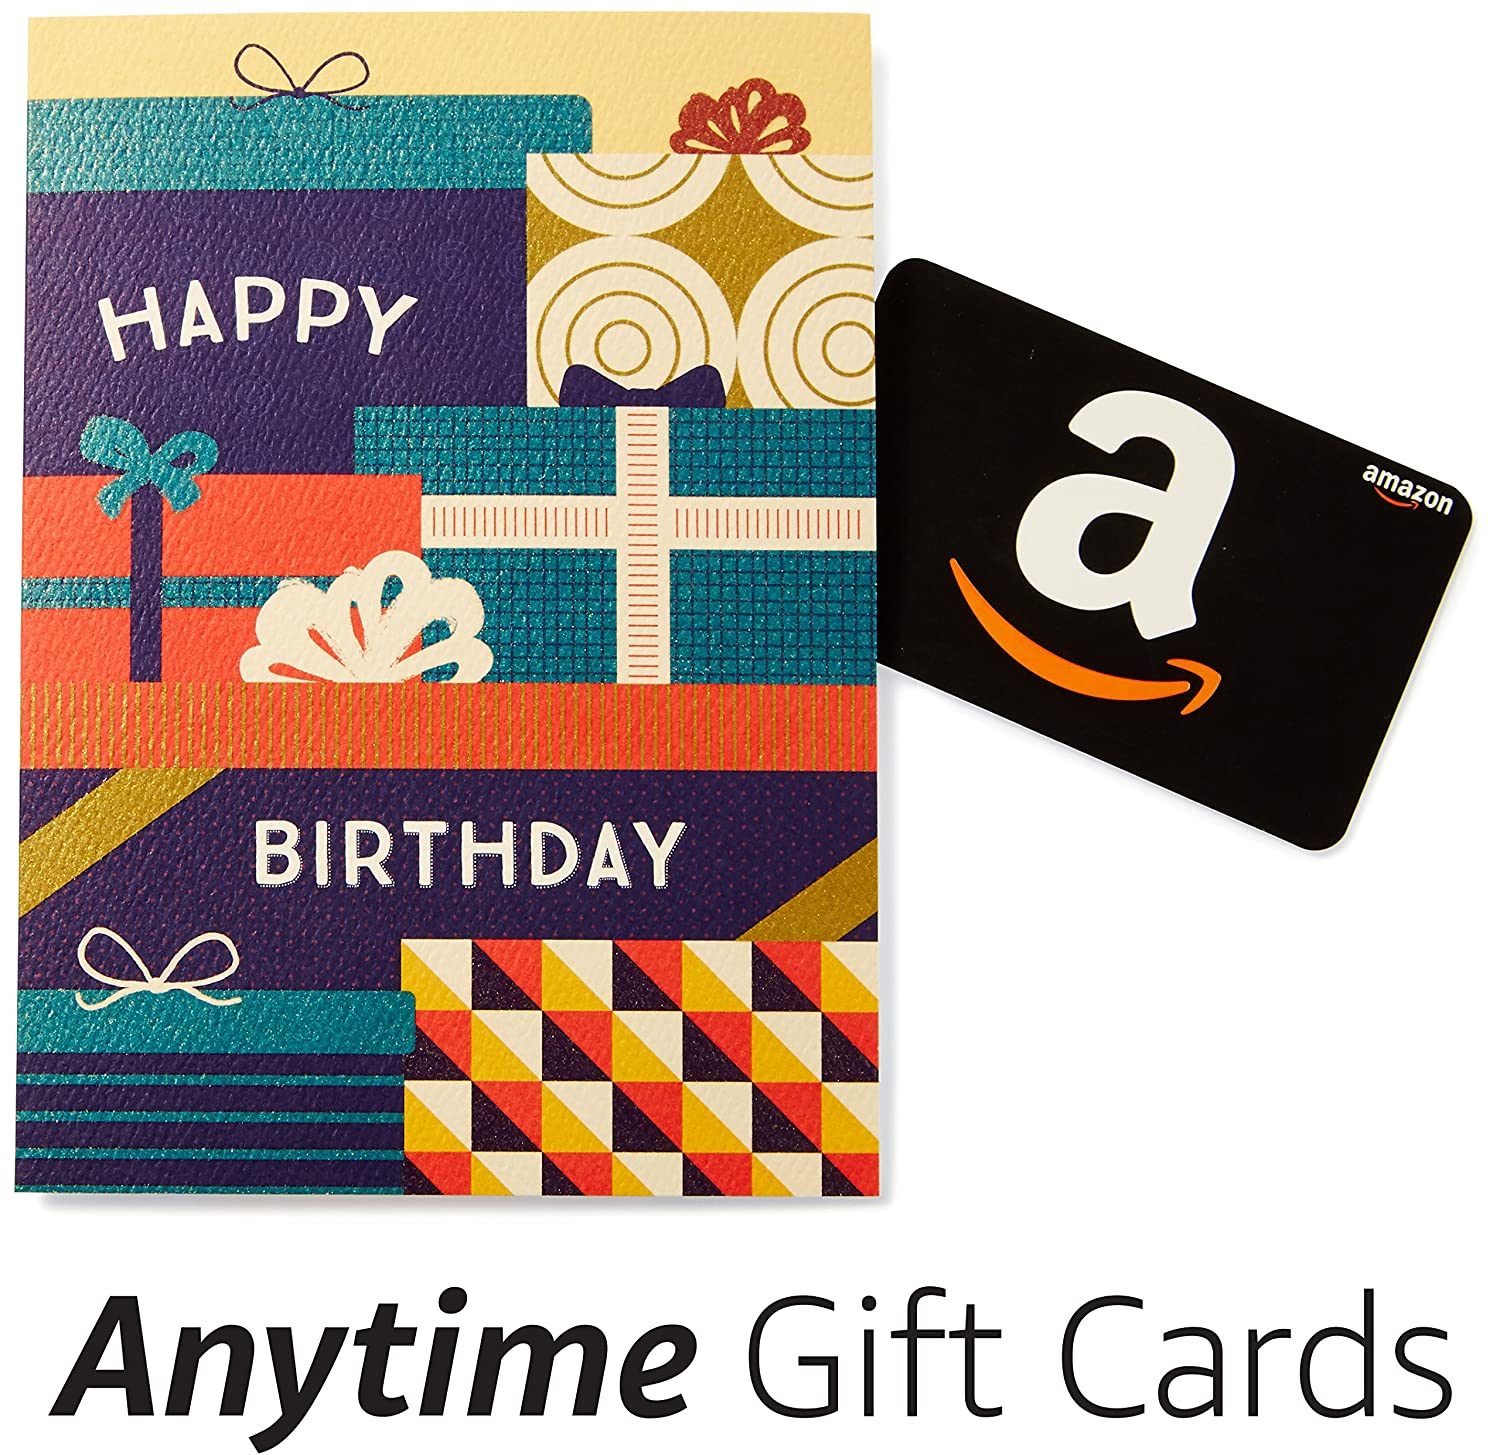 Amazon gift card accessories gift cards amazon happy birthday premium greeting card with anytime gift card pack of 3 kristyandbryce Gallery